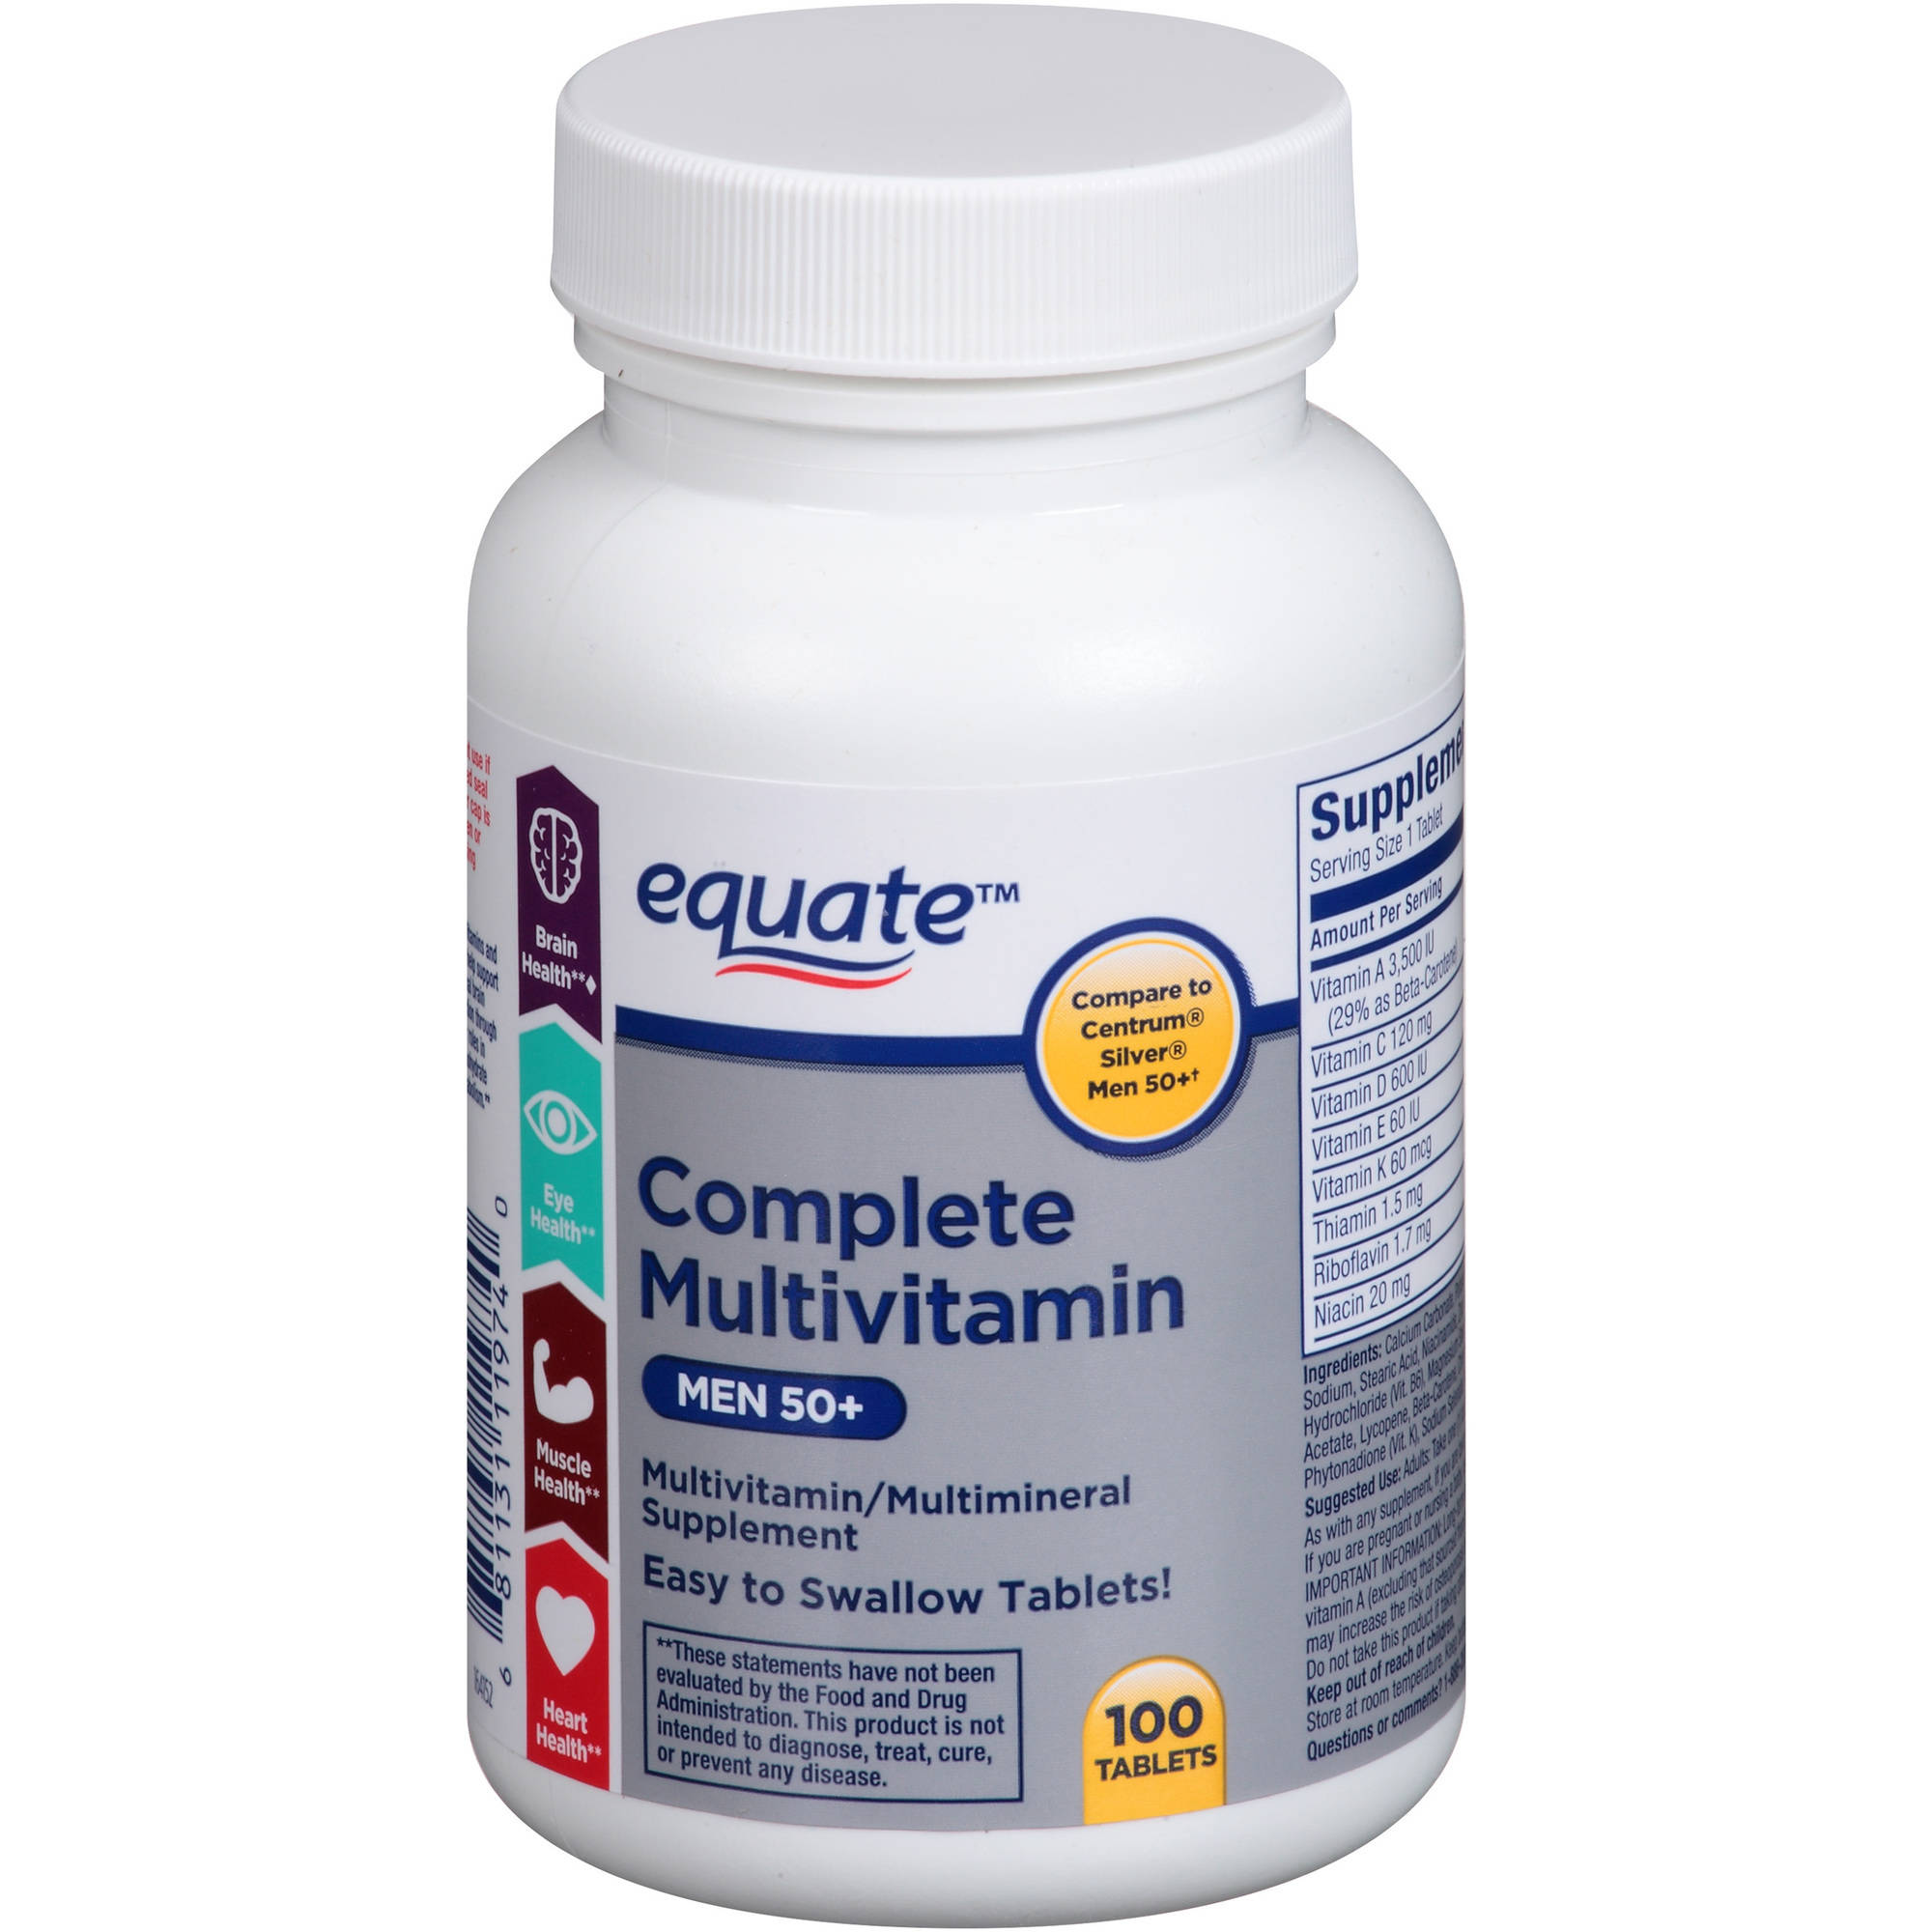 equate complete multivitamin women 50 multivitamin